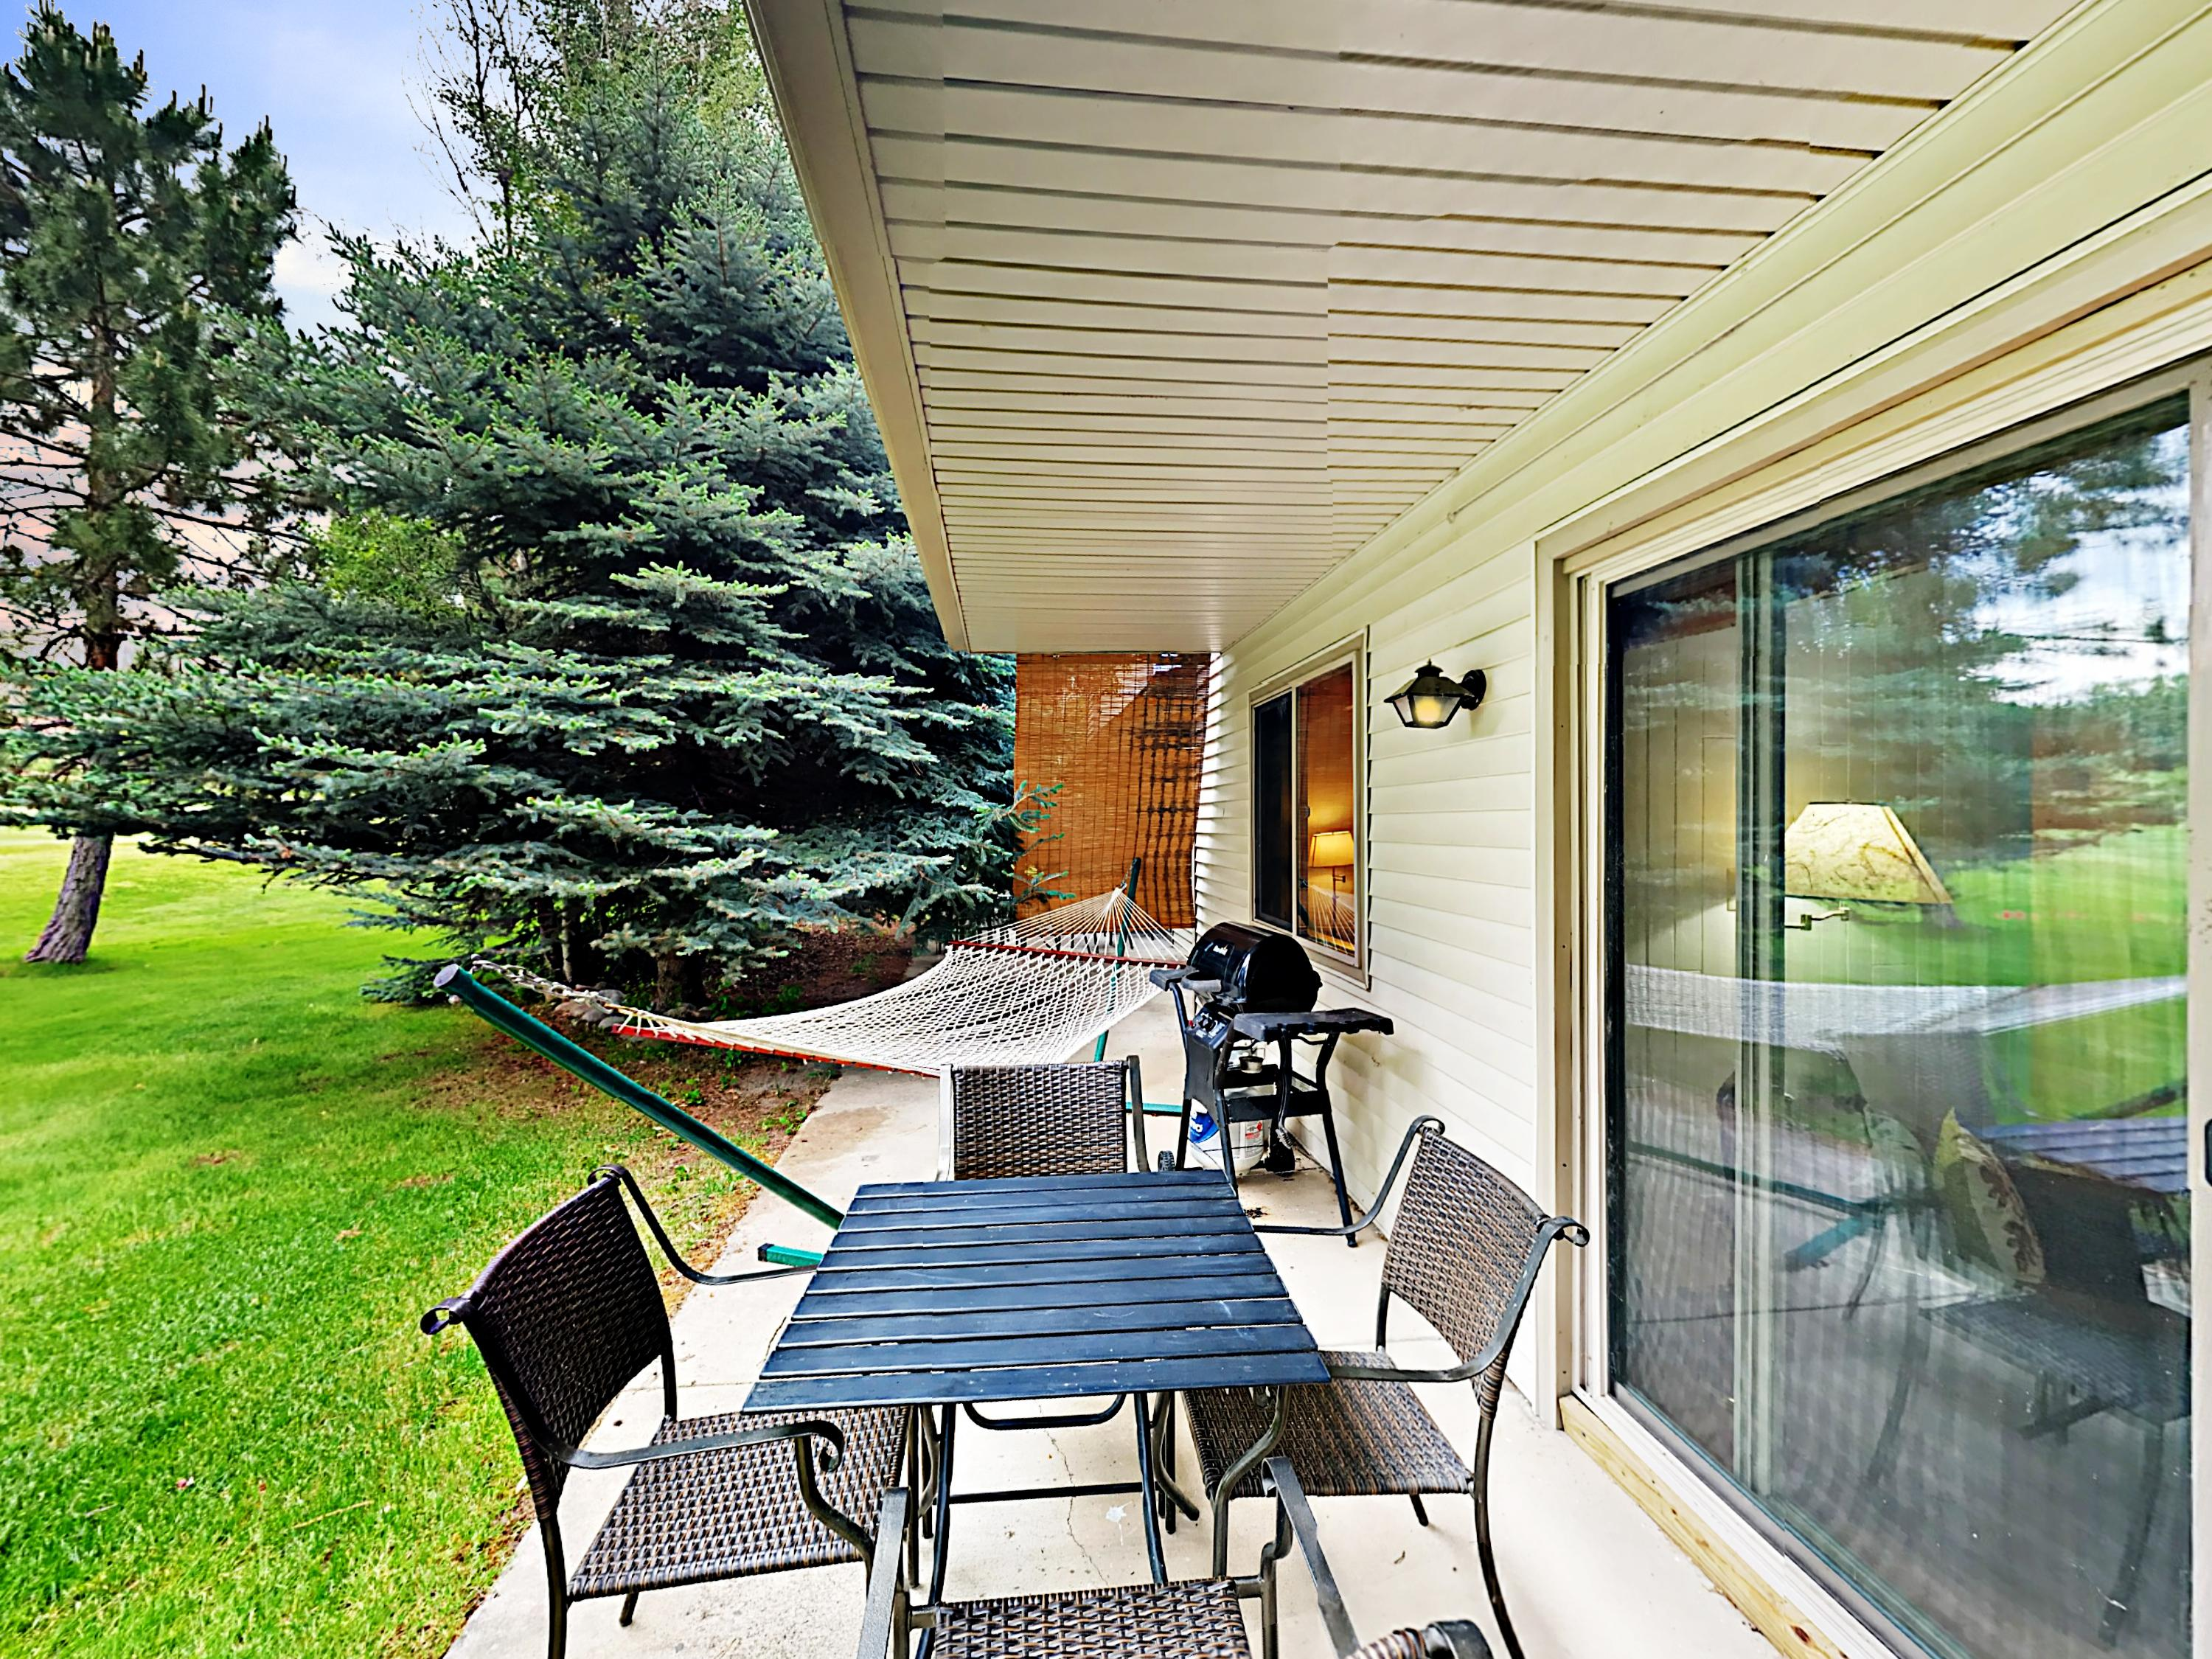 Your outdoor deck (which overlooks the golf course) is complete with a relaxing hammock, grill, and dining table for 4.